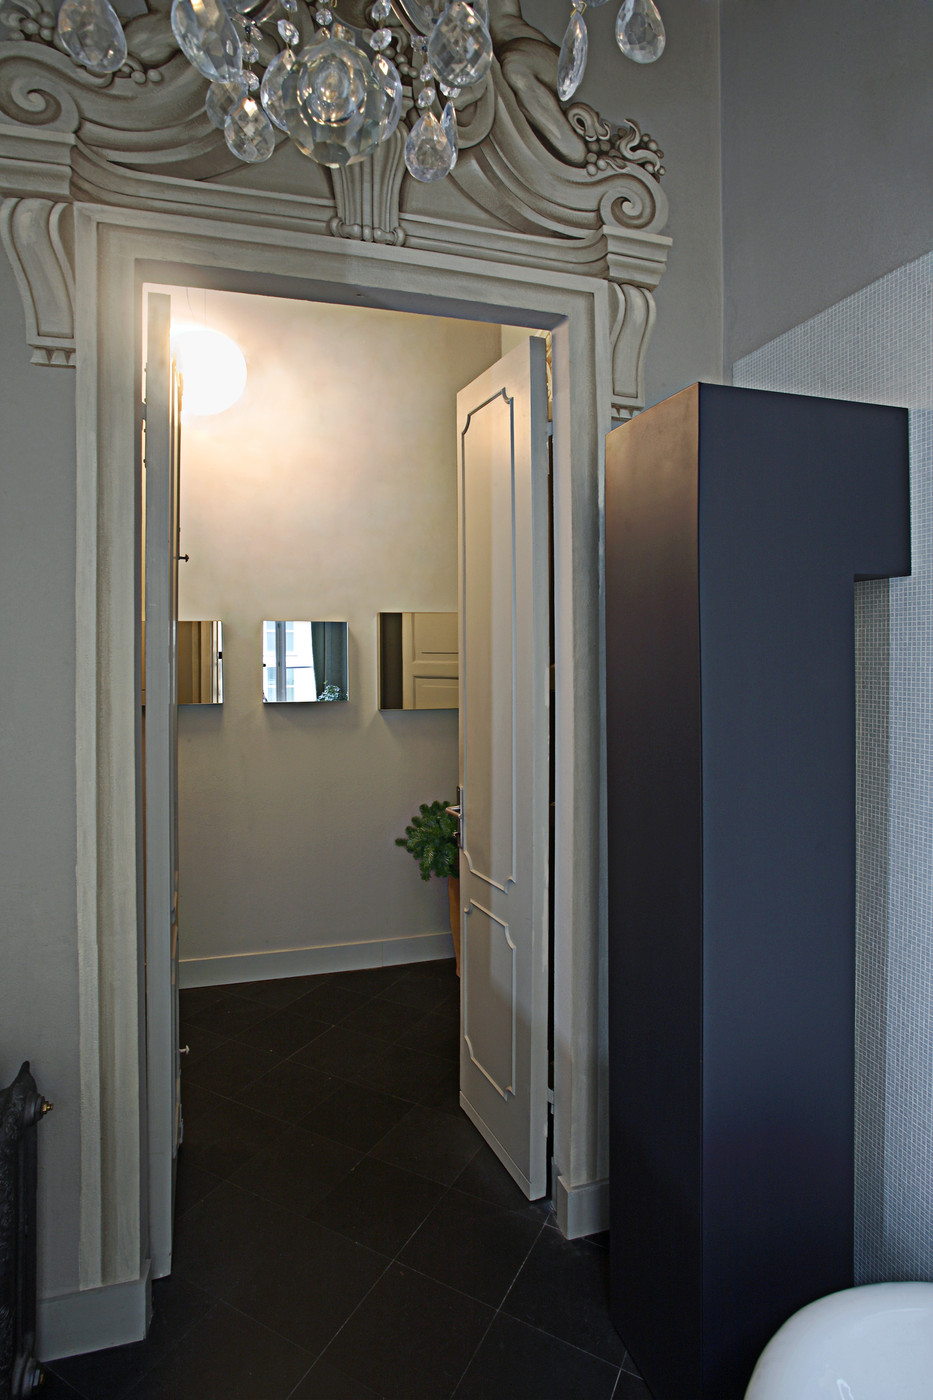 Ornate doorway with a mirrored view